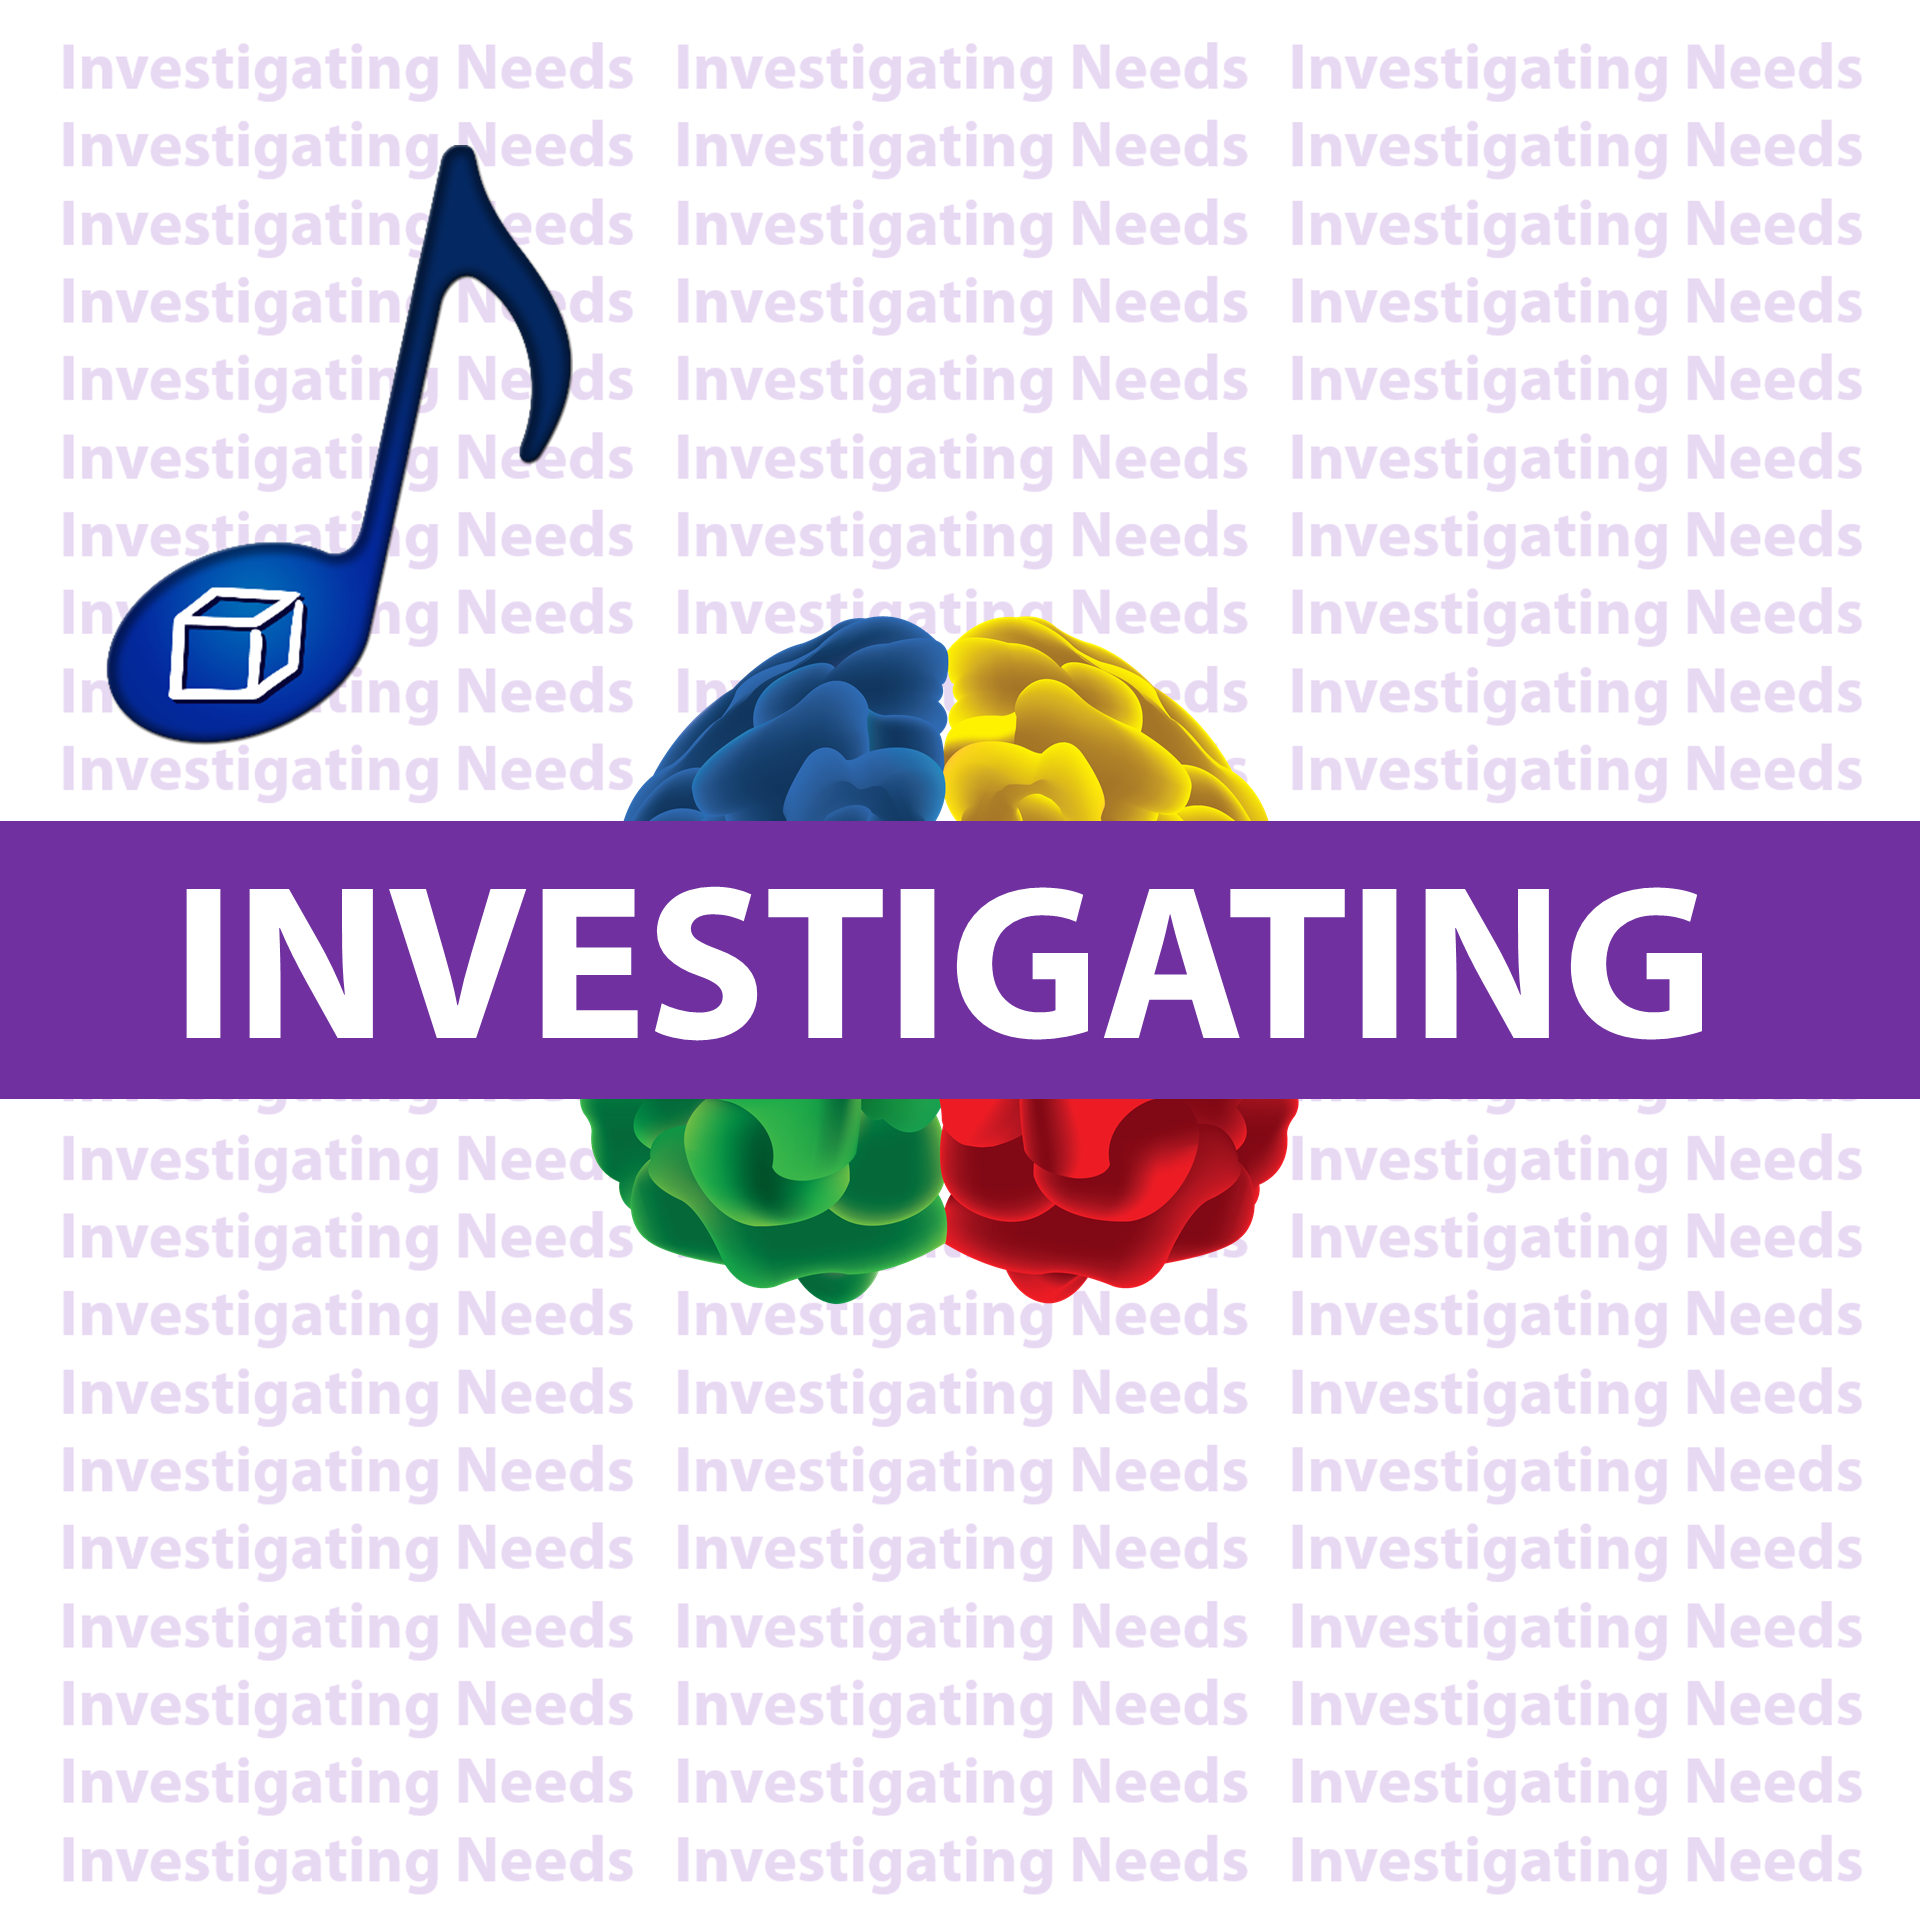 Investigating Needs iMusic KnowBrainer